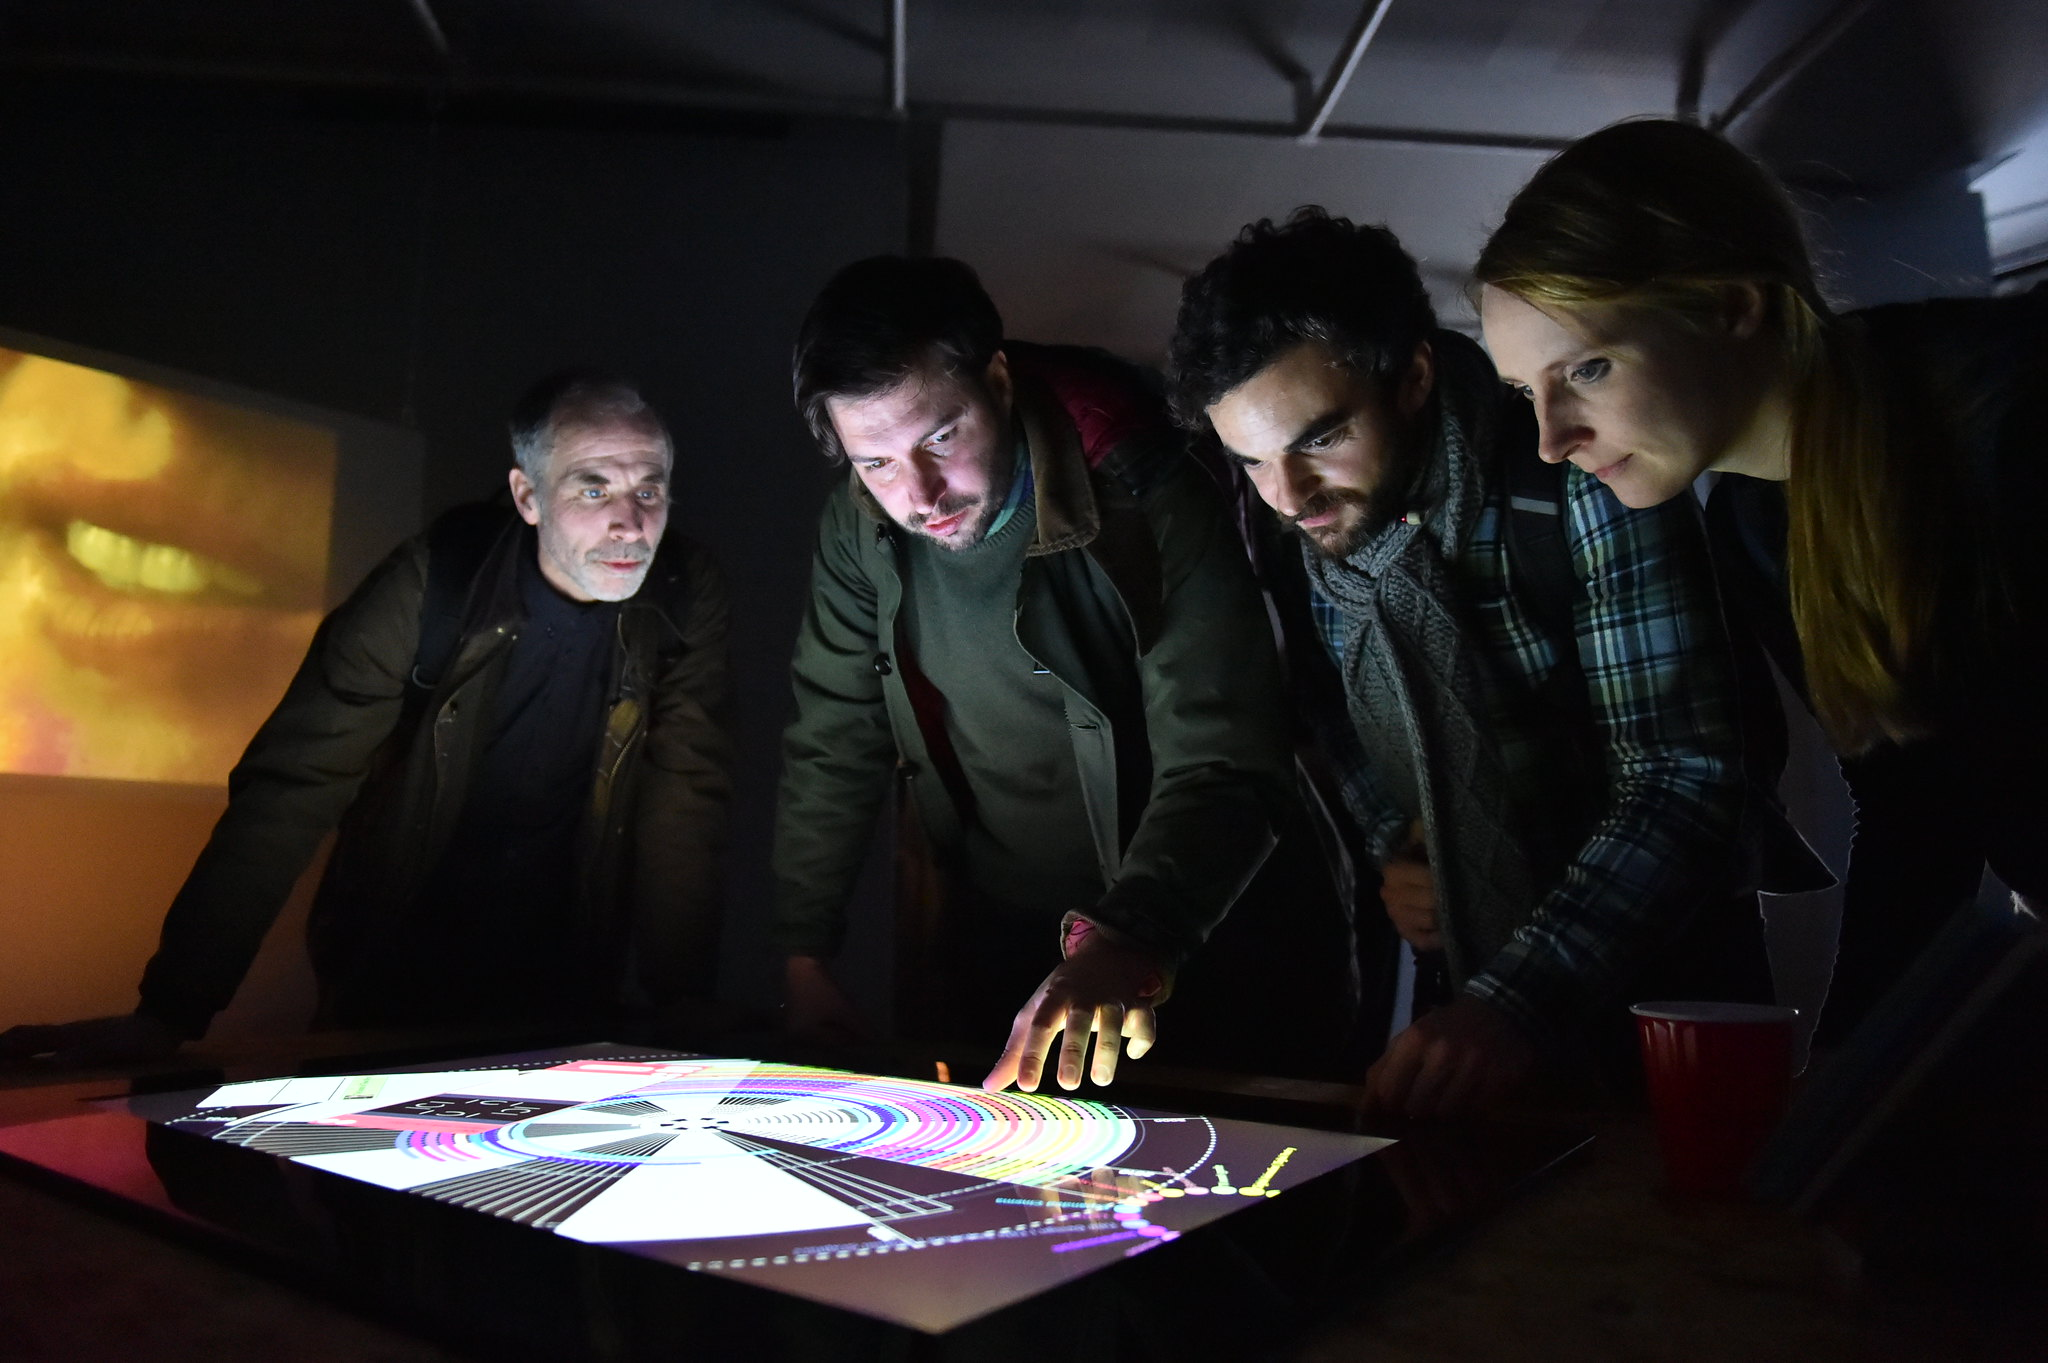 Four people gathered around touchscreen table.